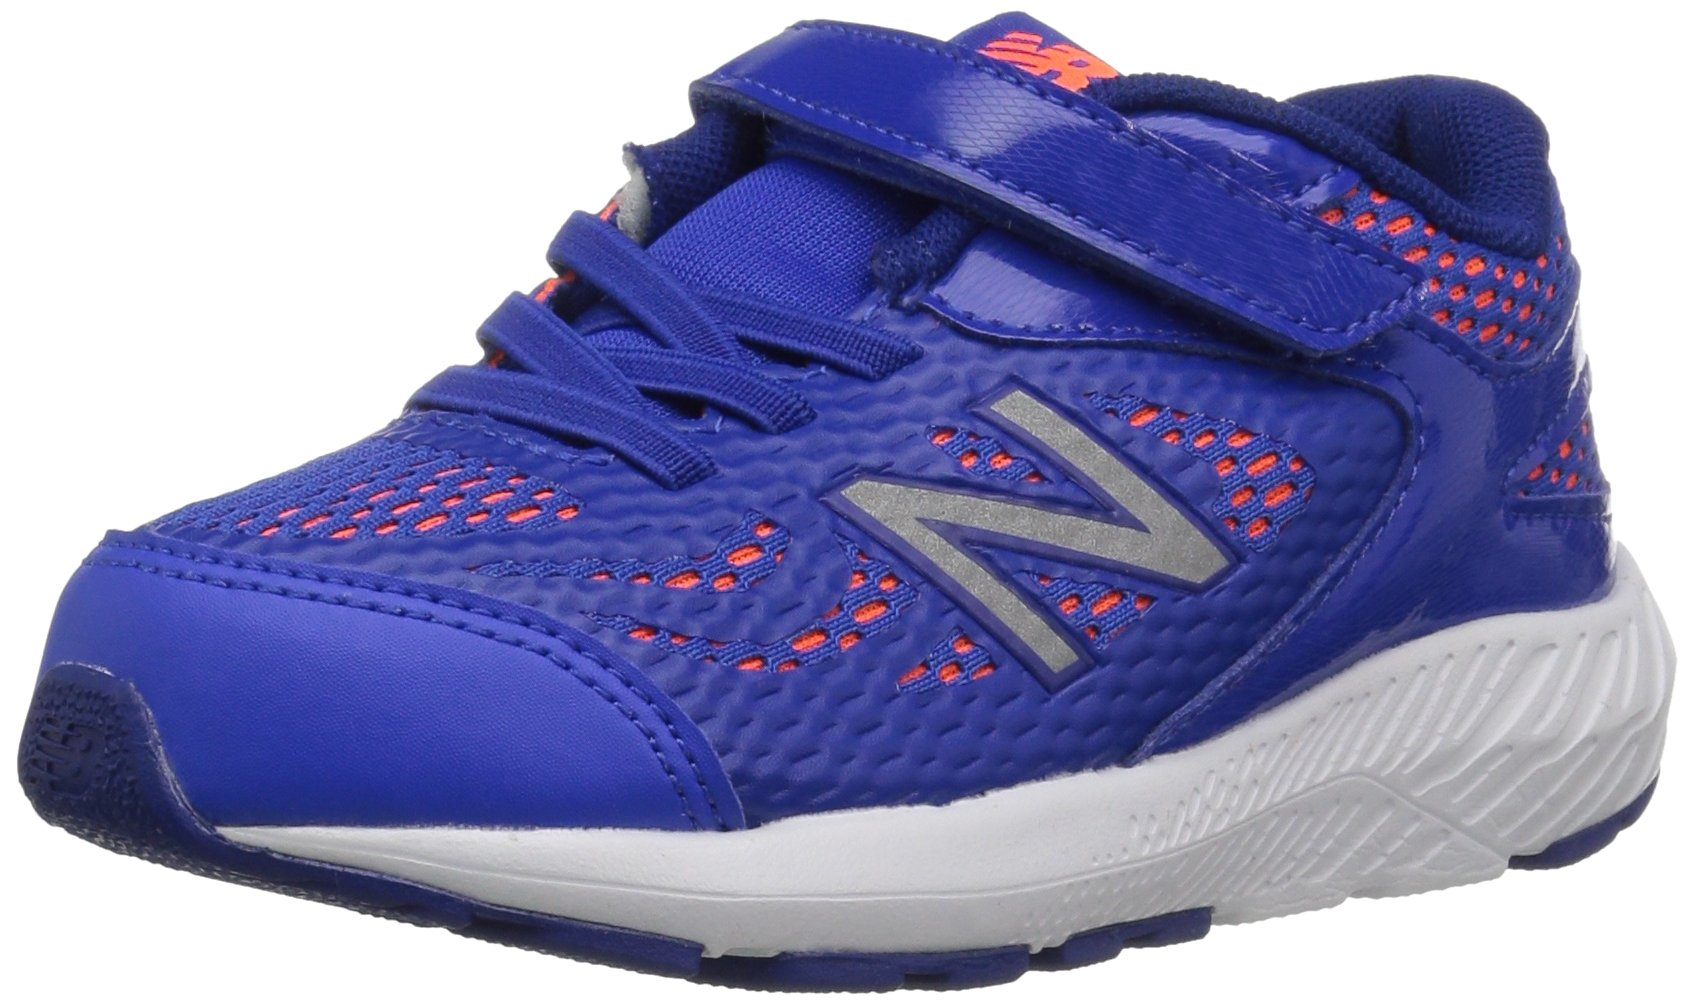 New Balance Boys' 519v1 Hook and Loop Running Shoe Pacific/Dynomite 2 M US Infant